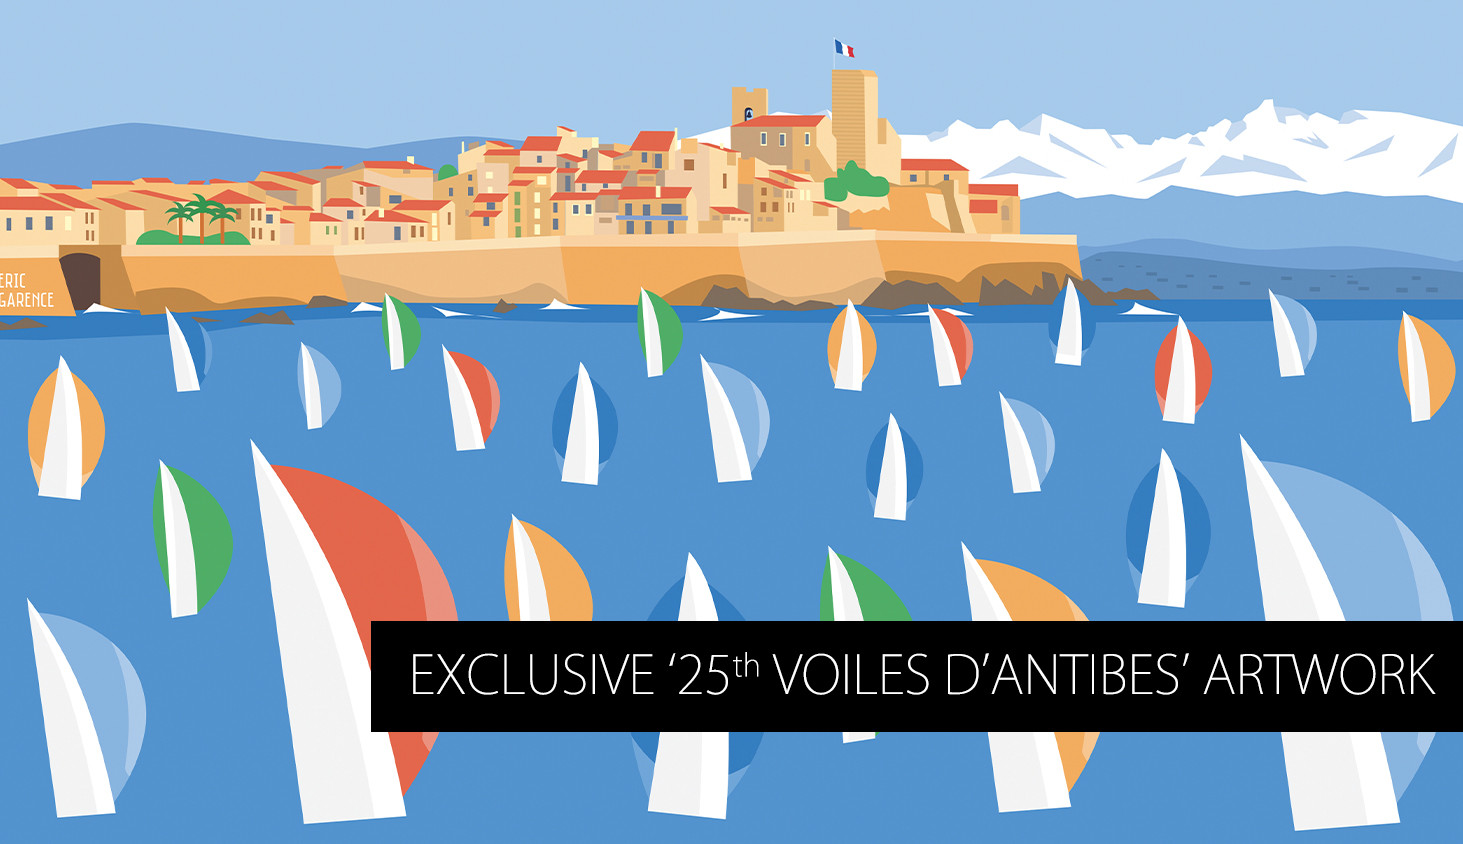 Poster of the 25th Voiles d'Antibes